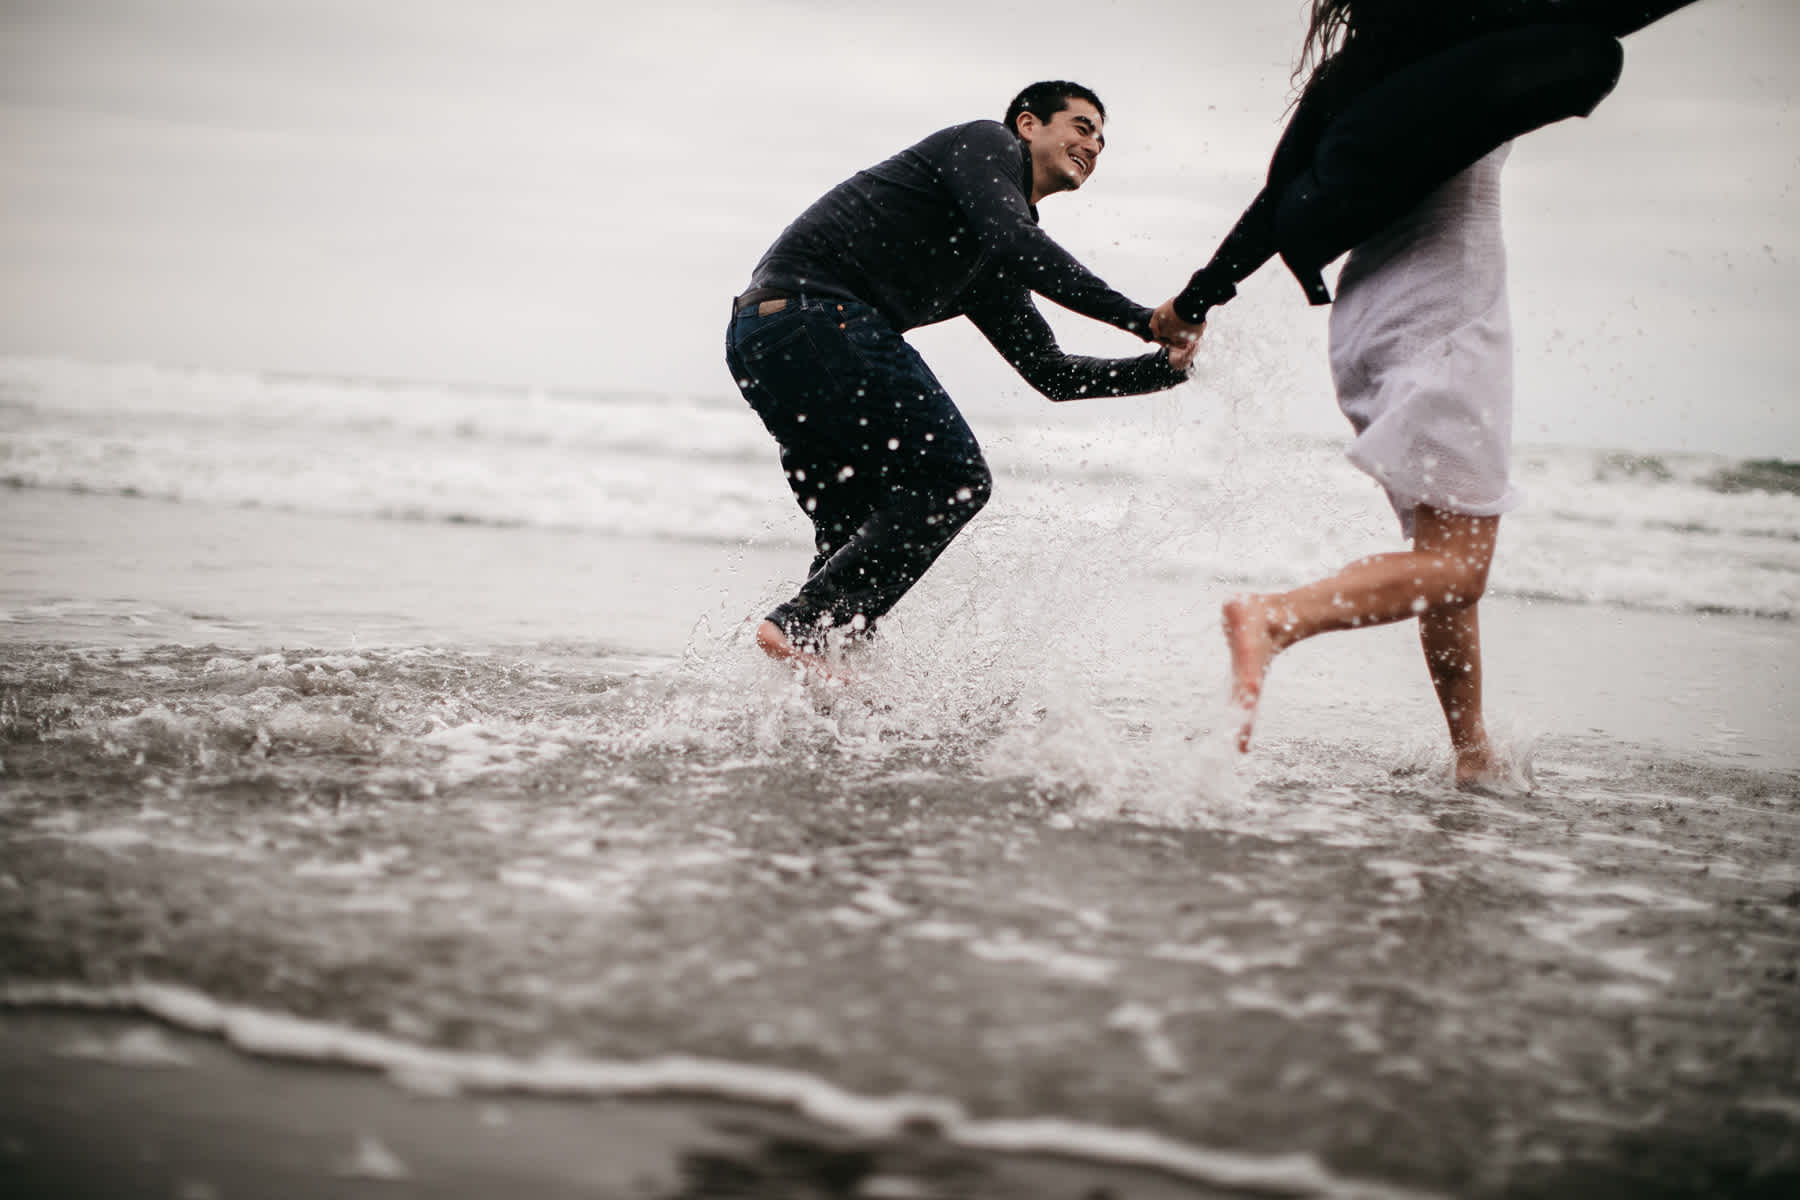 fort-funston-foggy-fun-beach-water-engagement-session-77